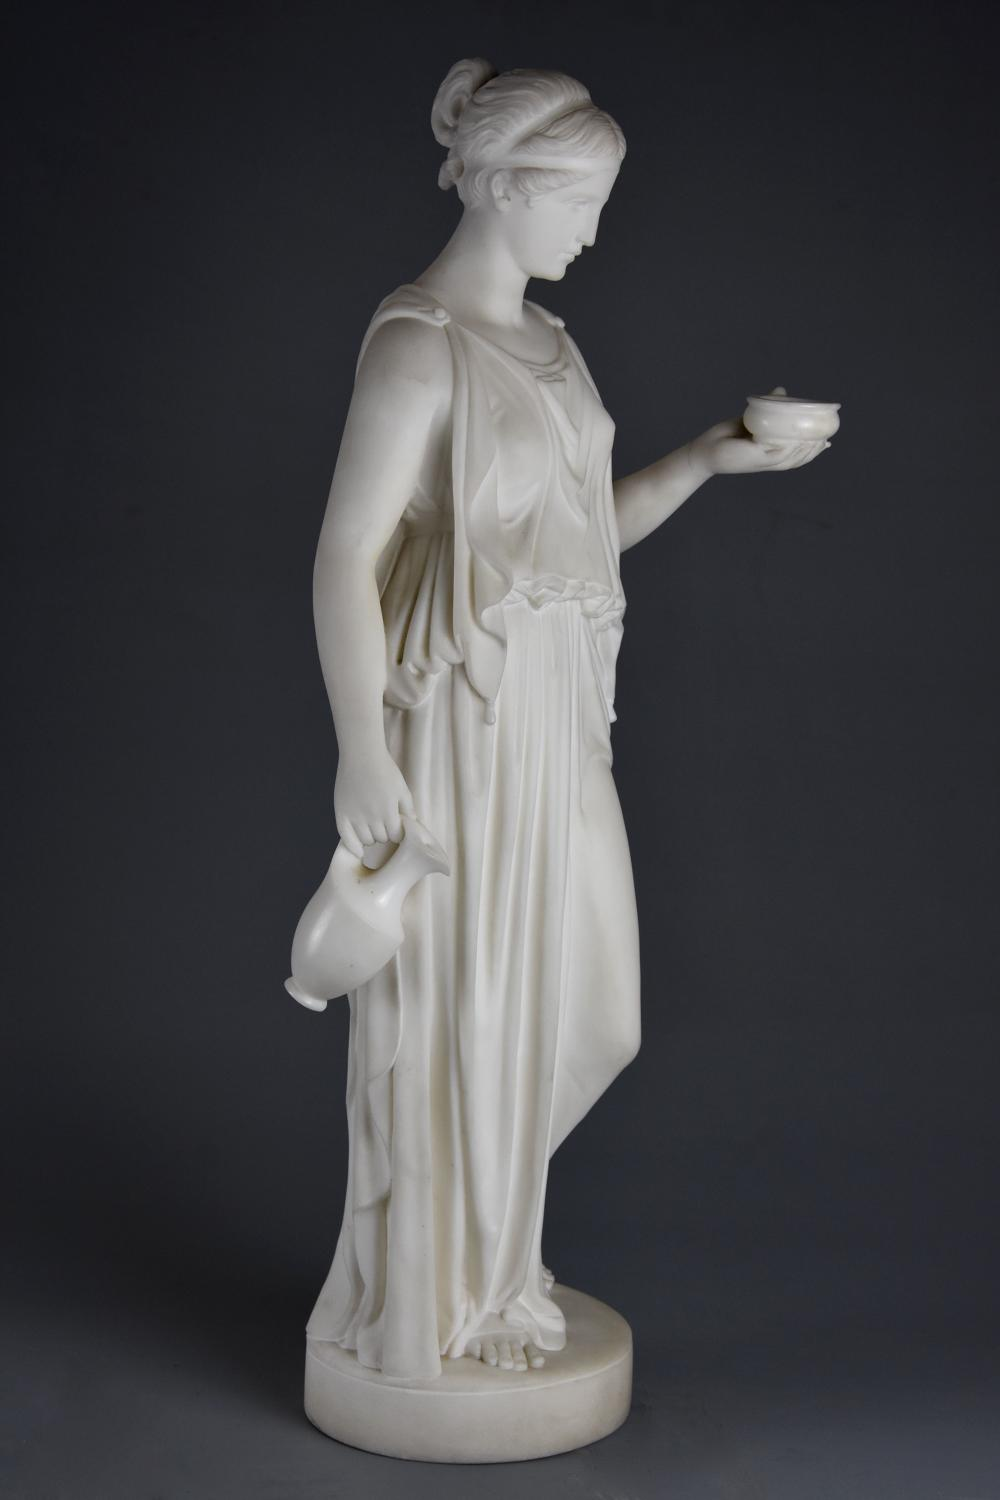 Fine quality 19thc marble figure of Hebe after Bertel Thorvaldsen